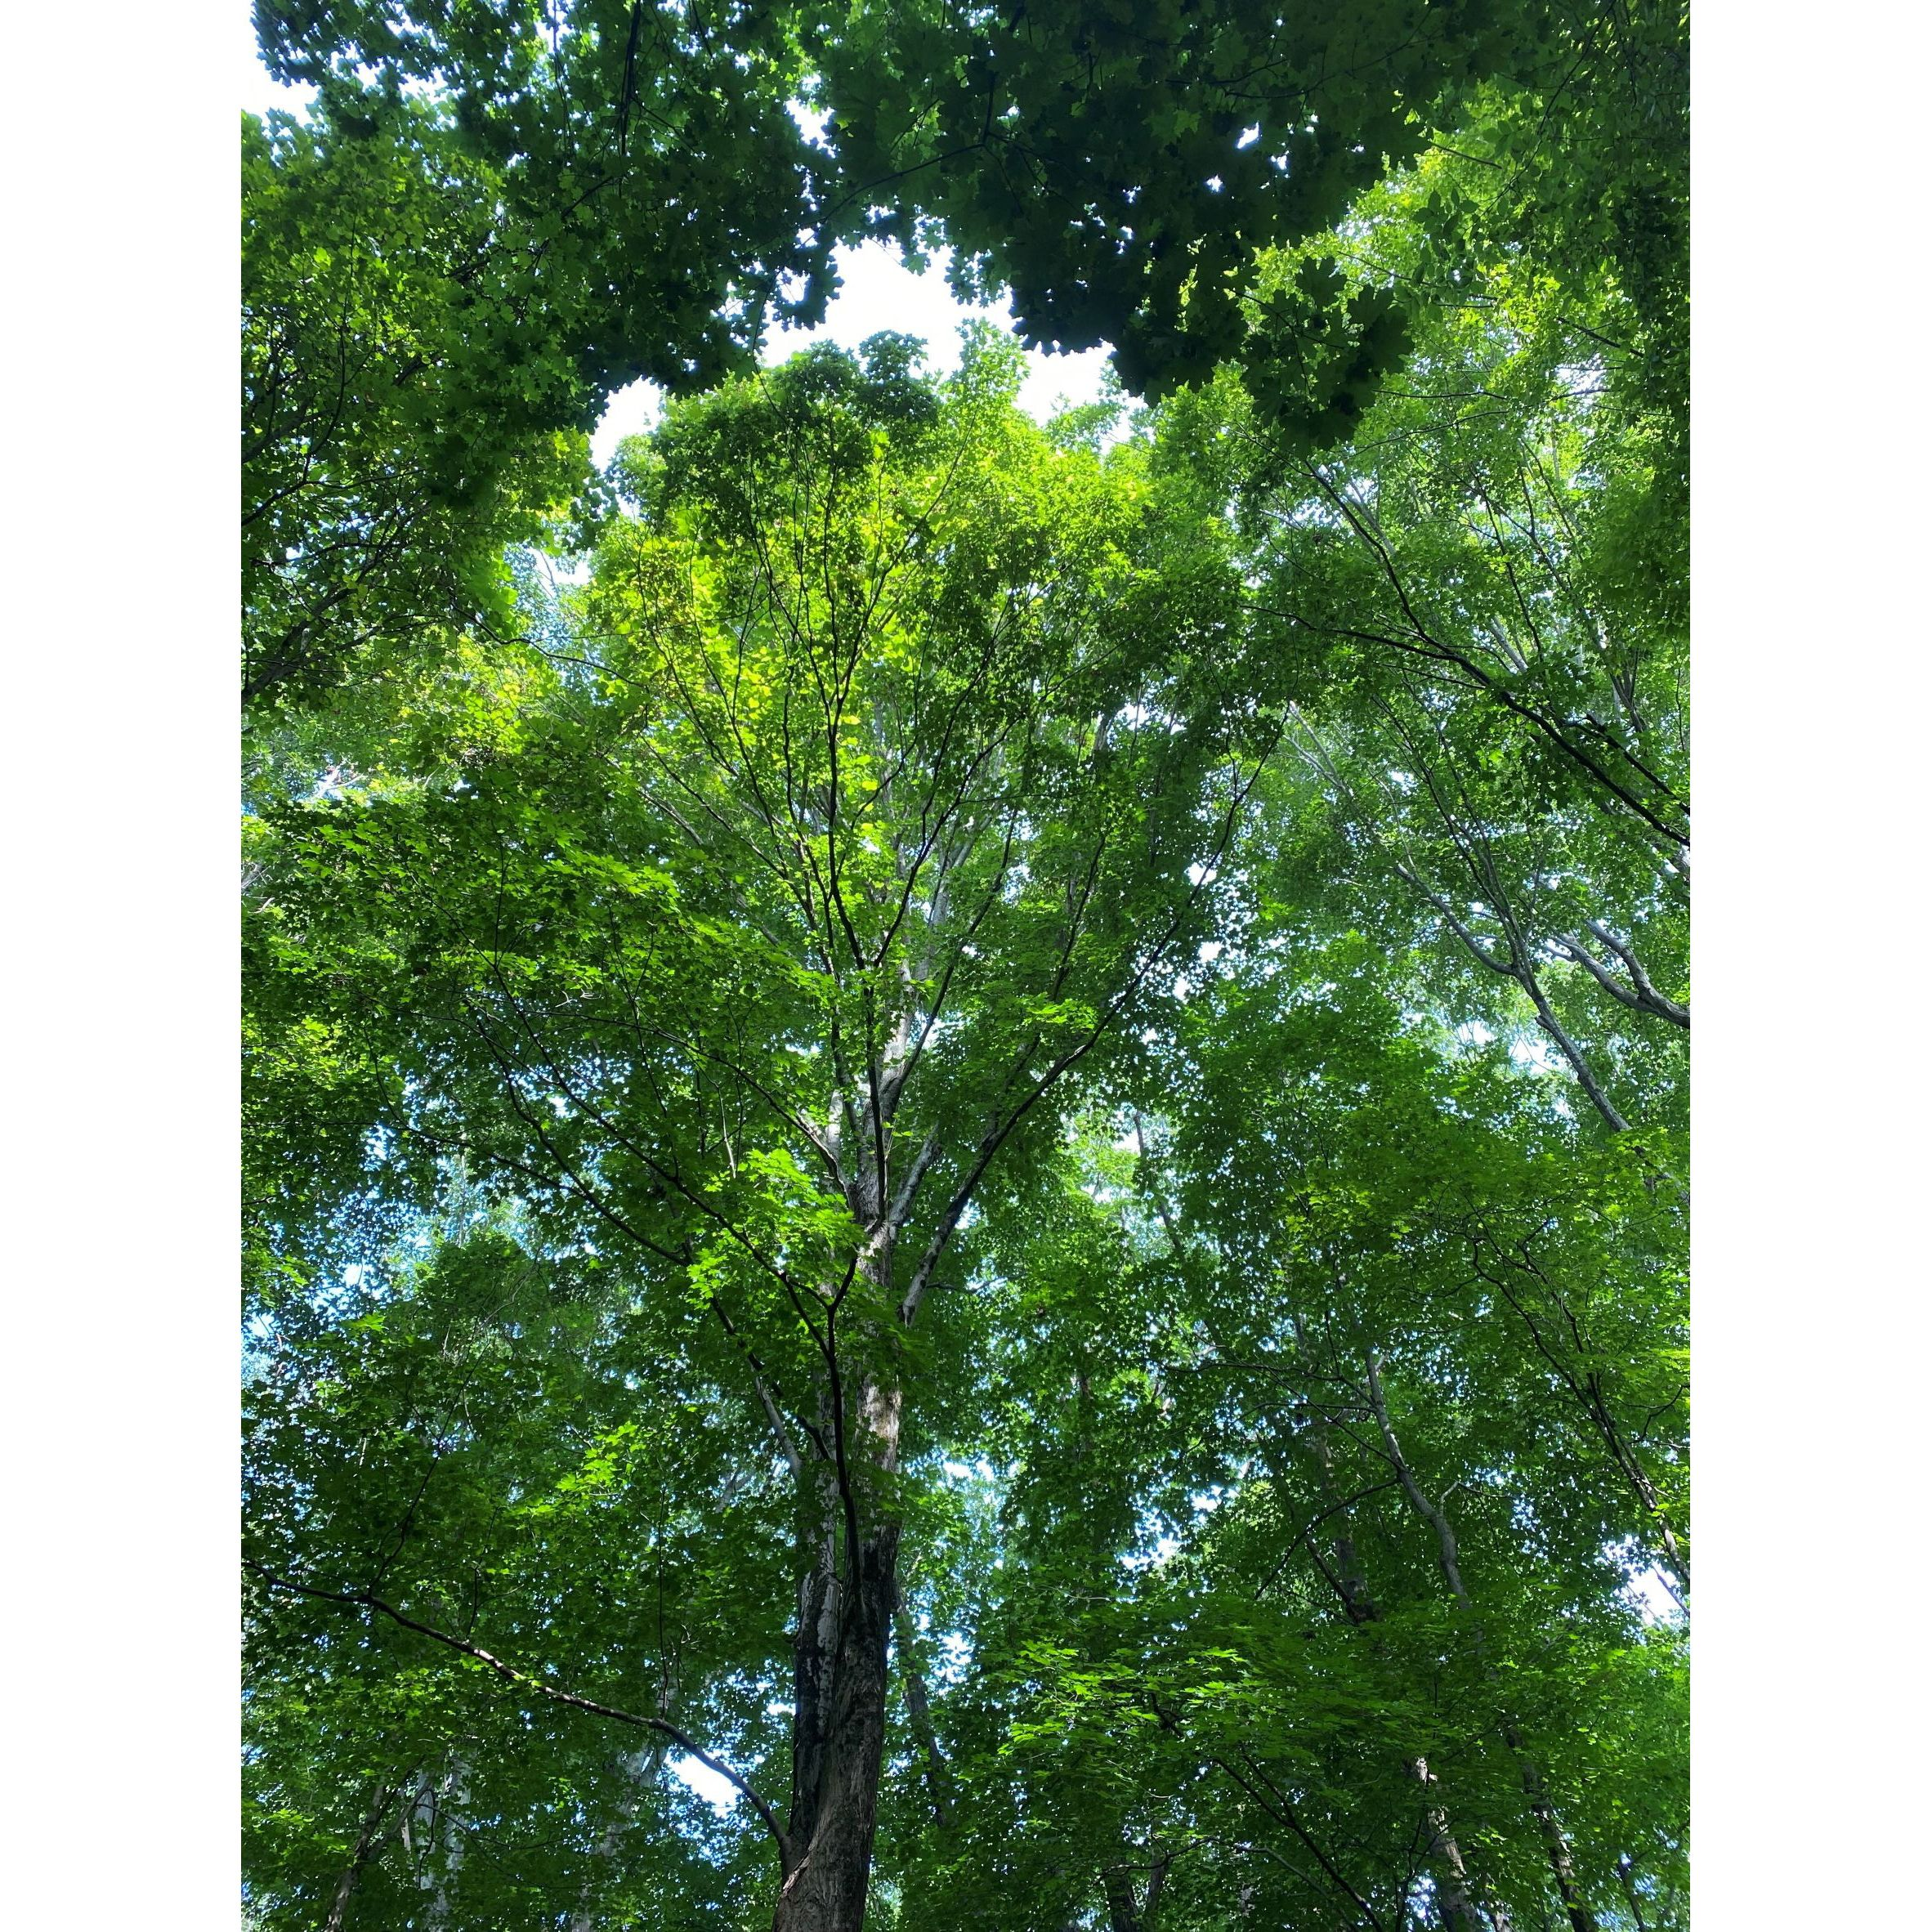 Looking way up at a solid, leafy green tree canopy, with blue and white sky peeking through.